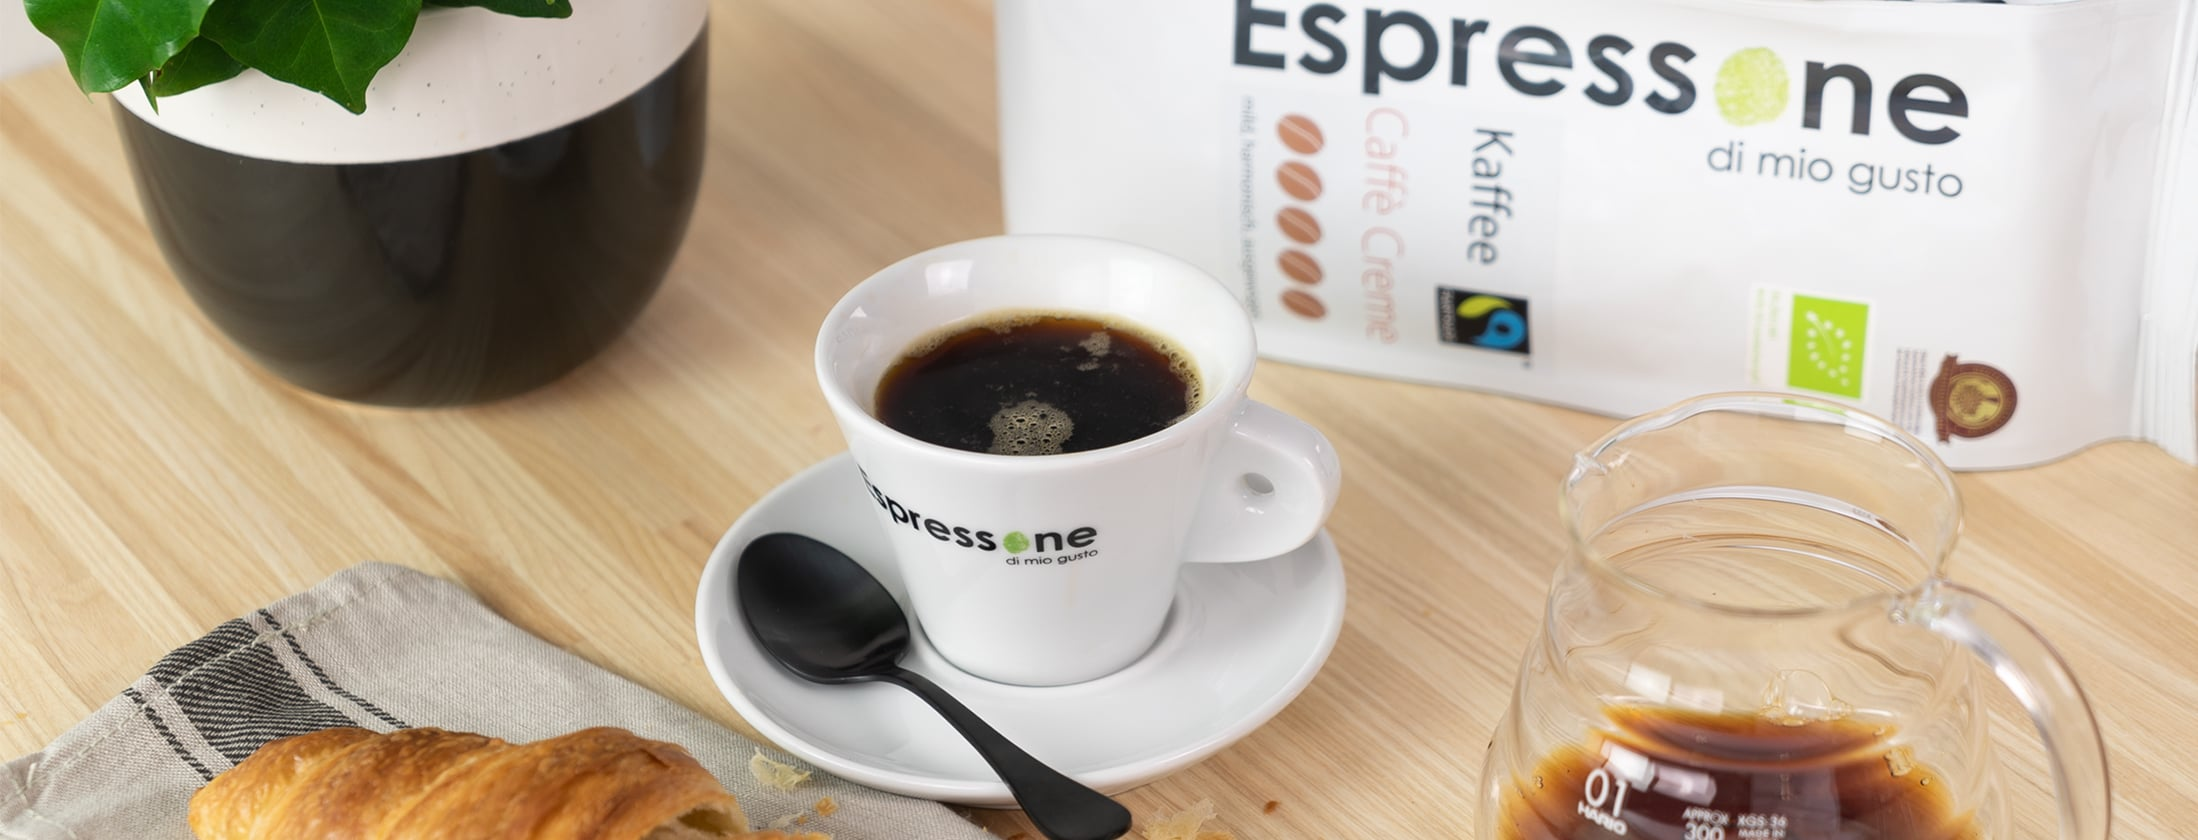 Espressone Bio FairTrade Kaffee Cafe Creme